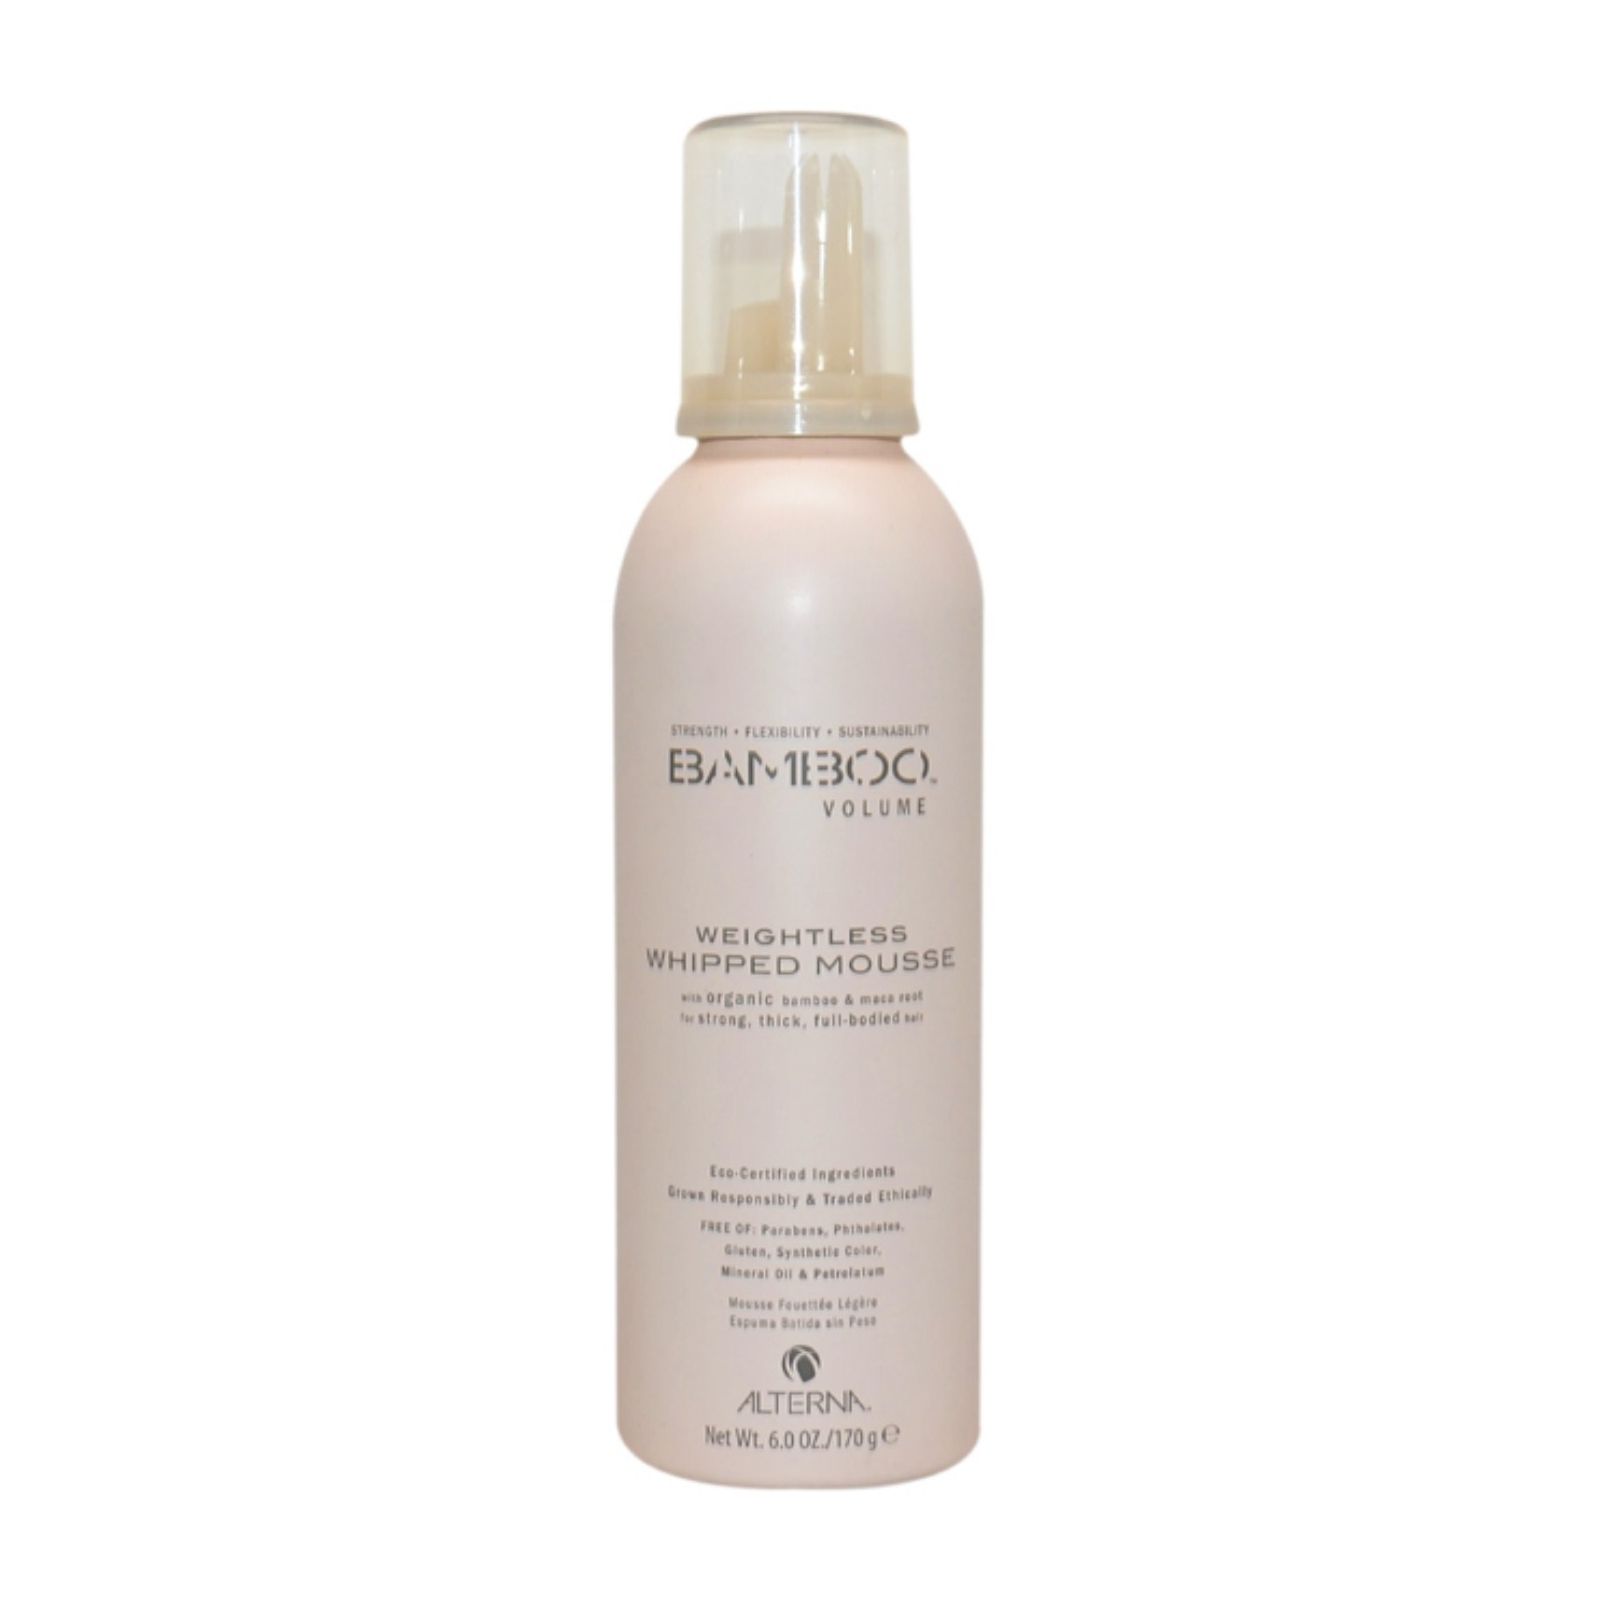 Alterna Bamboo Volume Weightless Whipped Mousse 5.5 oz - $34.66